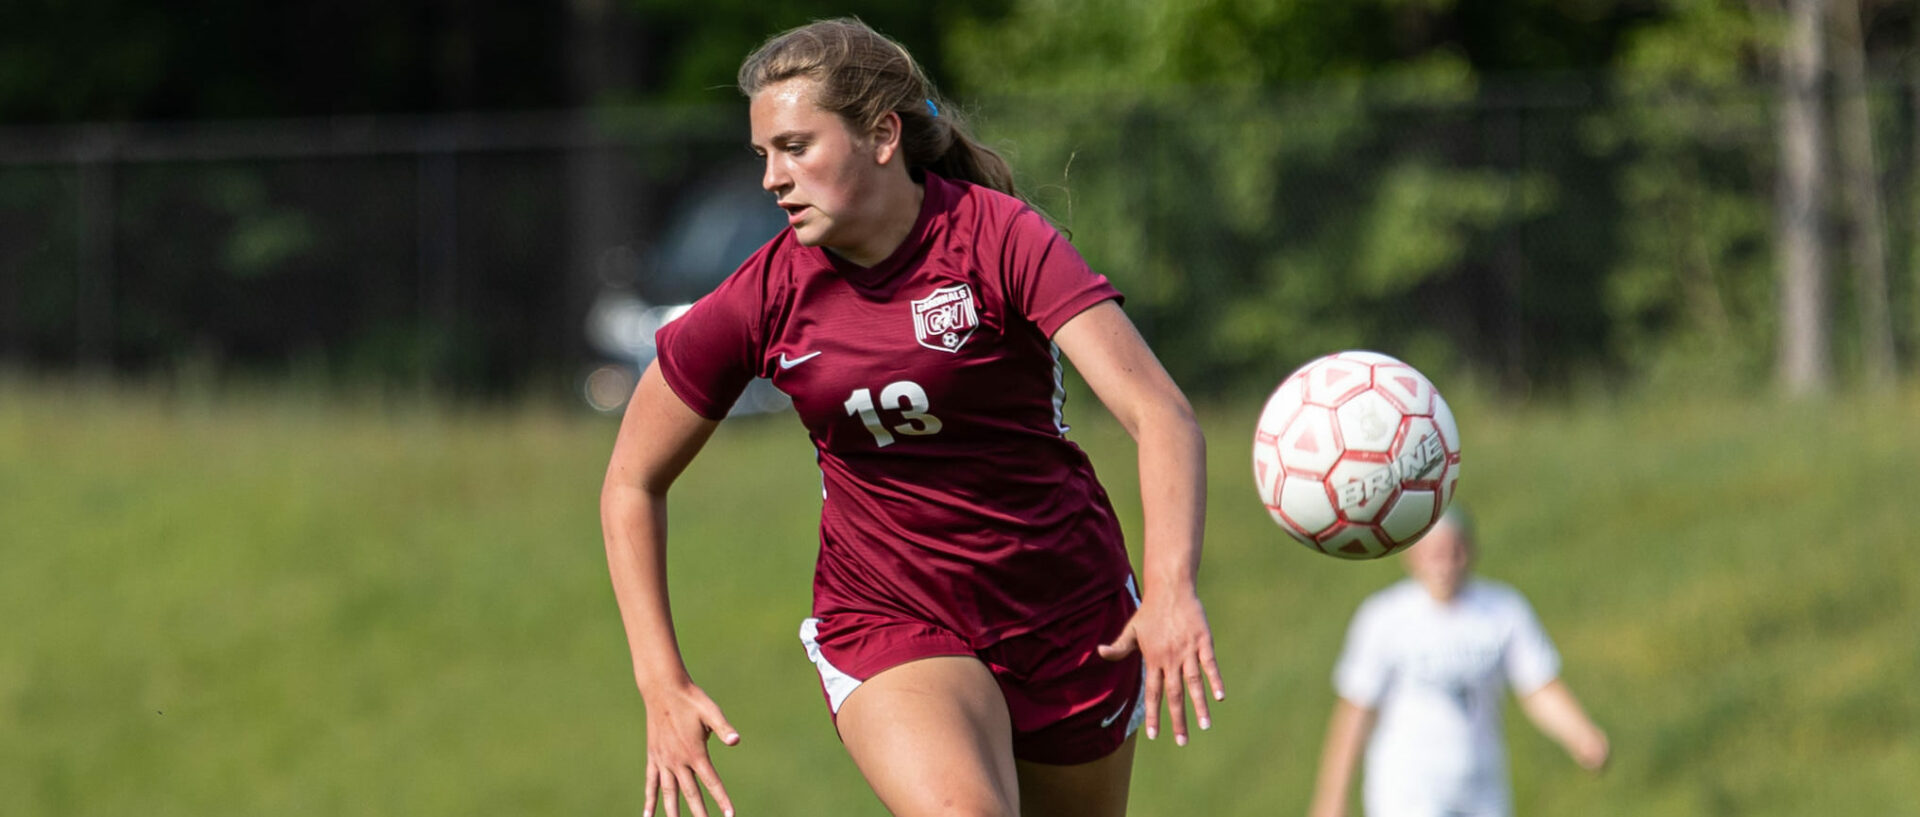 Photo gallery from Orchard View girls soccer loss to Grand Rapids West Catholic in Division 3 district semifinal